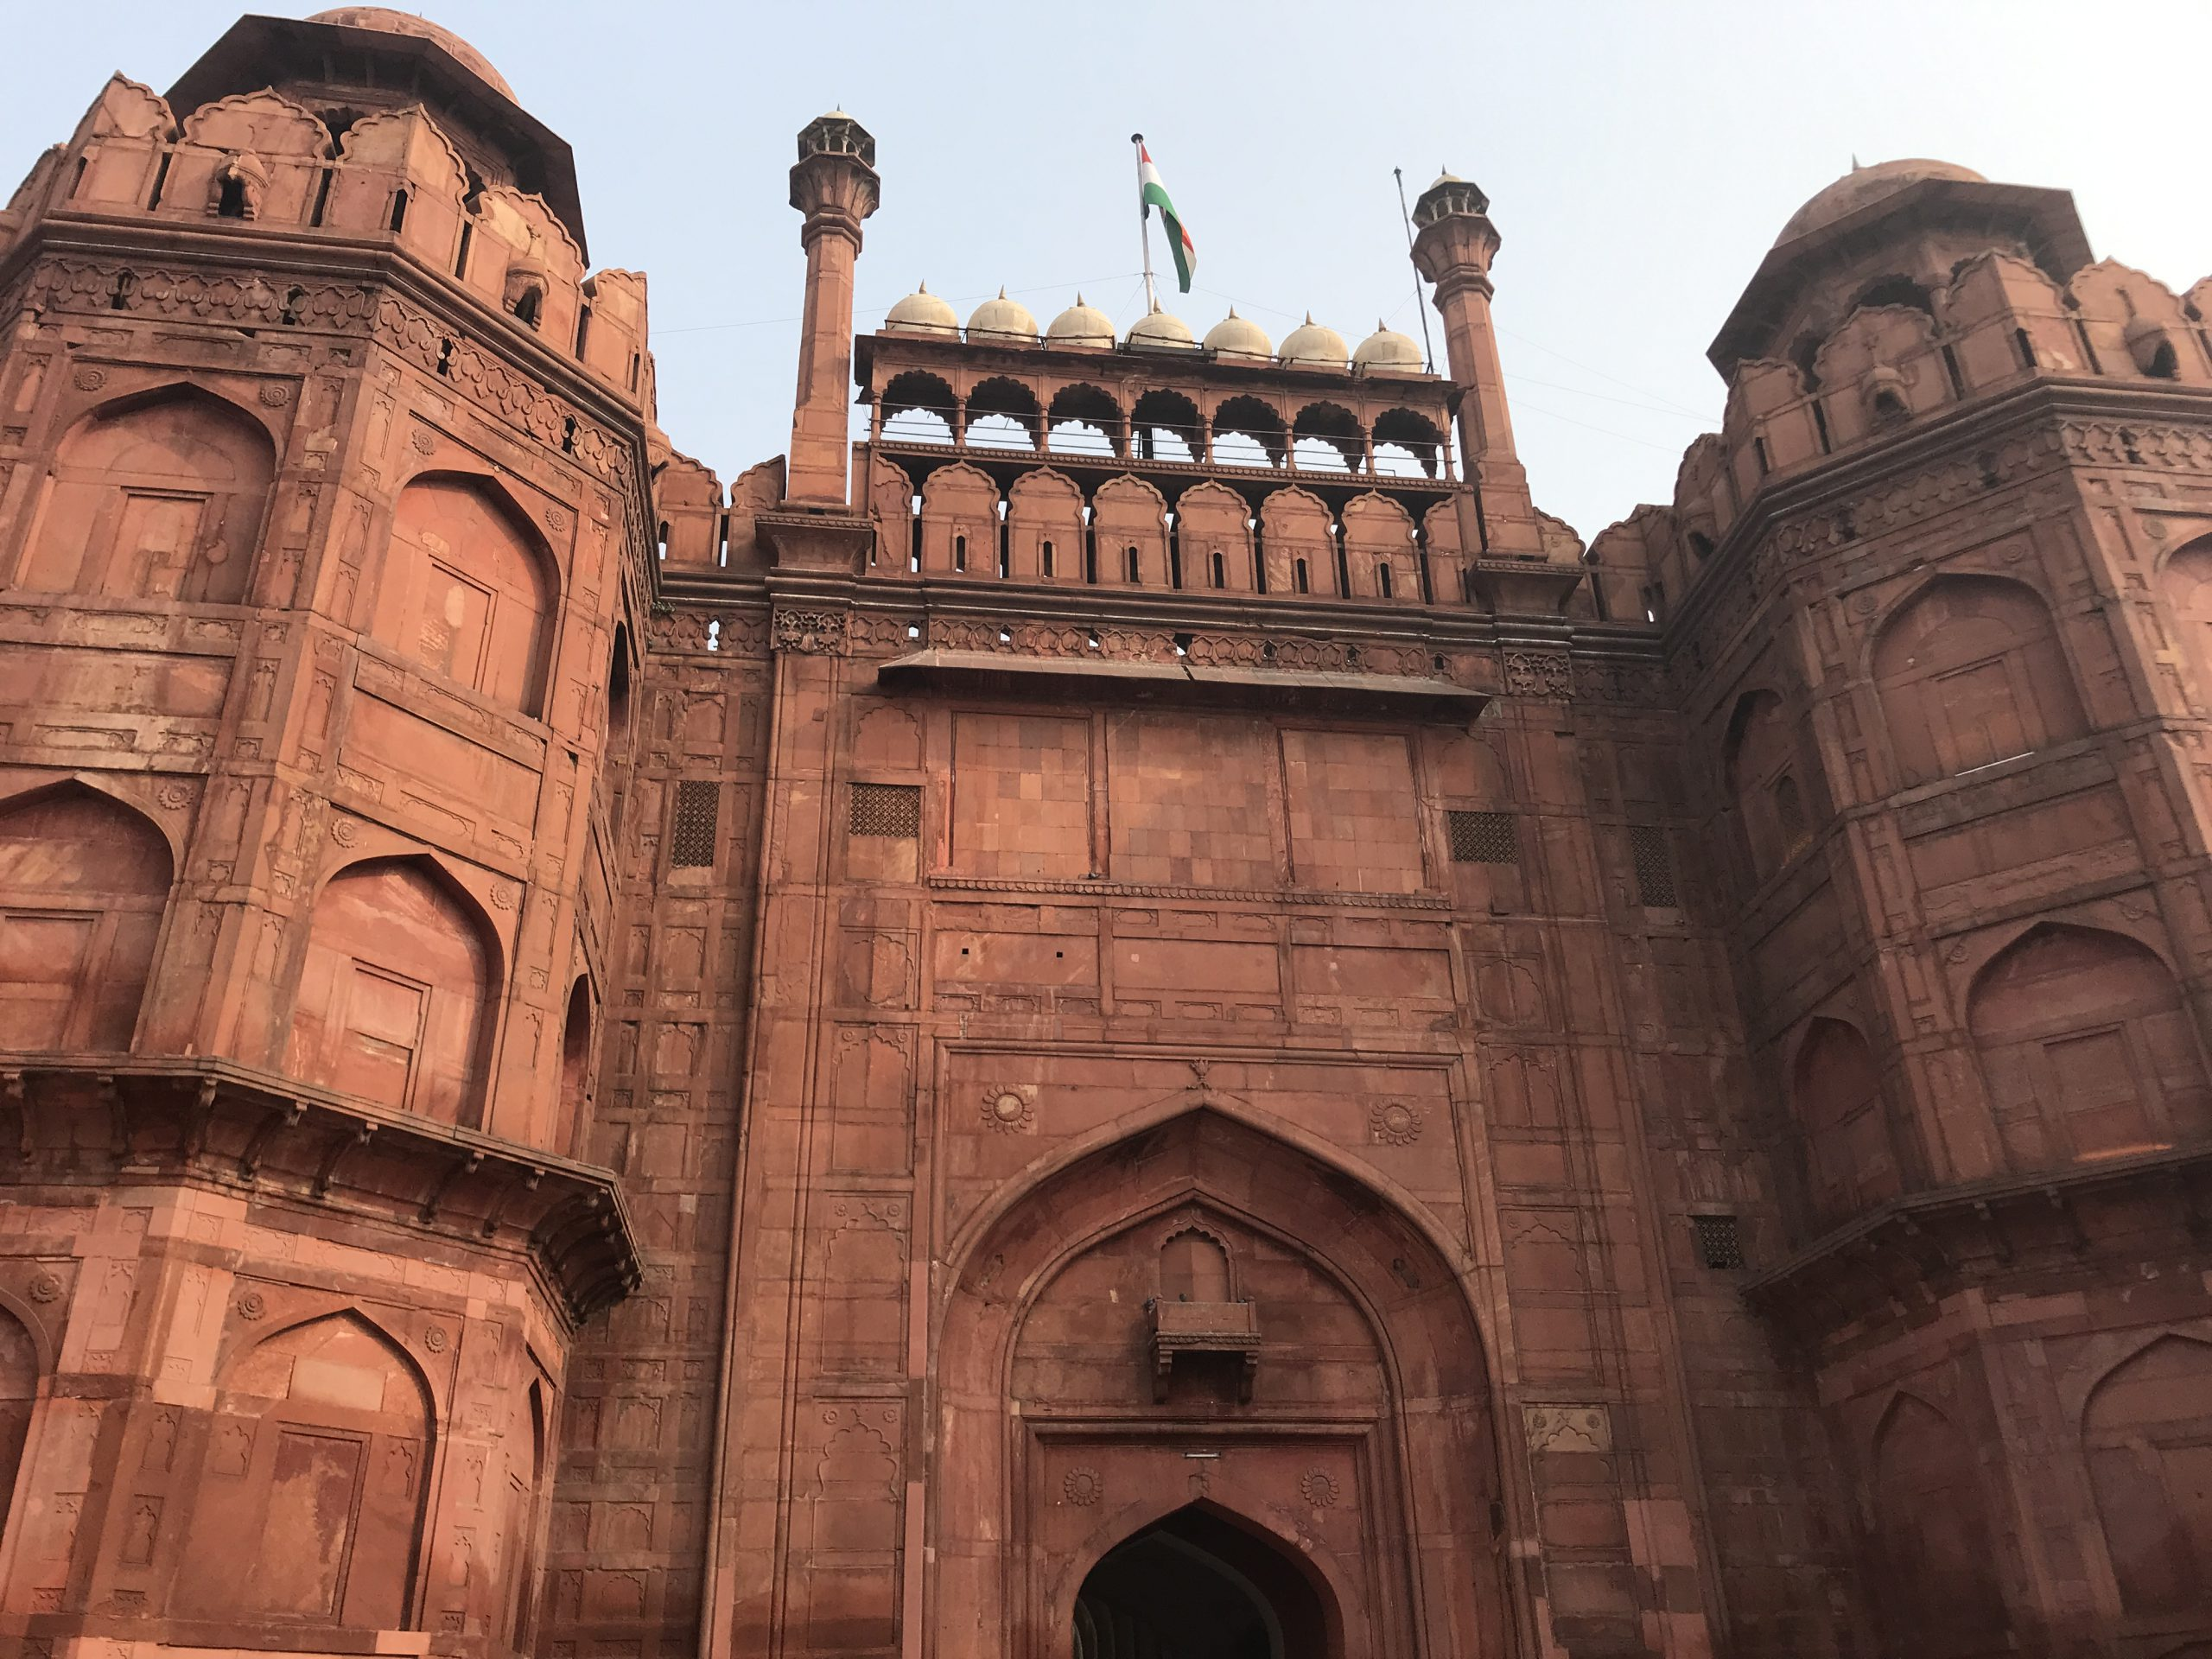 The entrance gate of the REd fort in Delhi, India. A stunning monument from the Mughal times built by Shah Jahan the same one who built the Taj Mahal in Agra